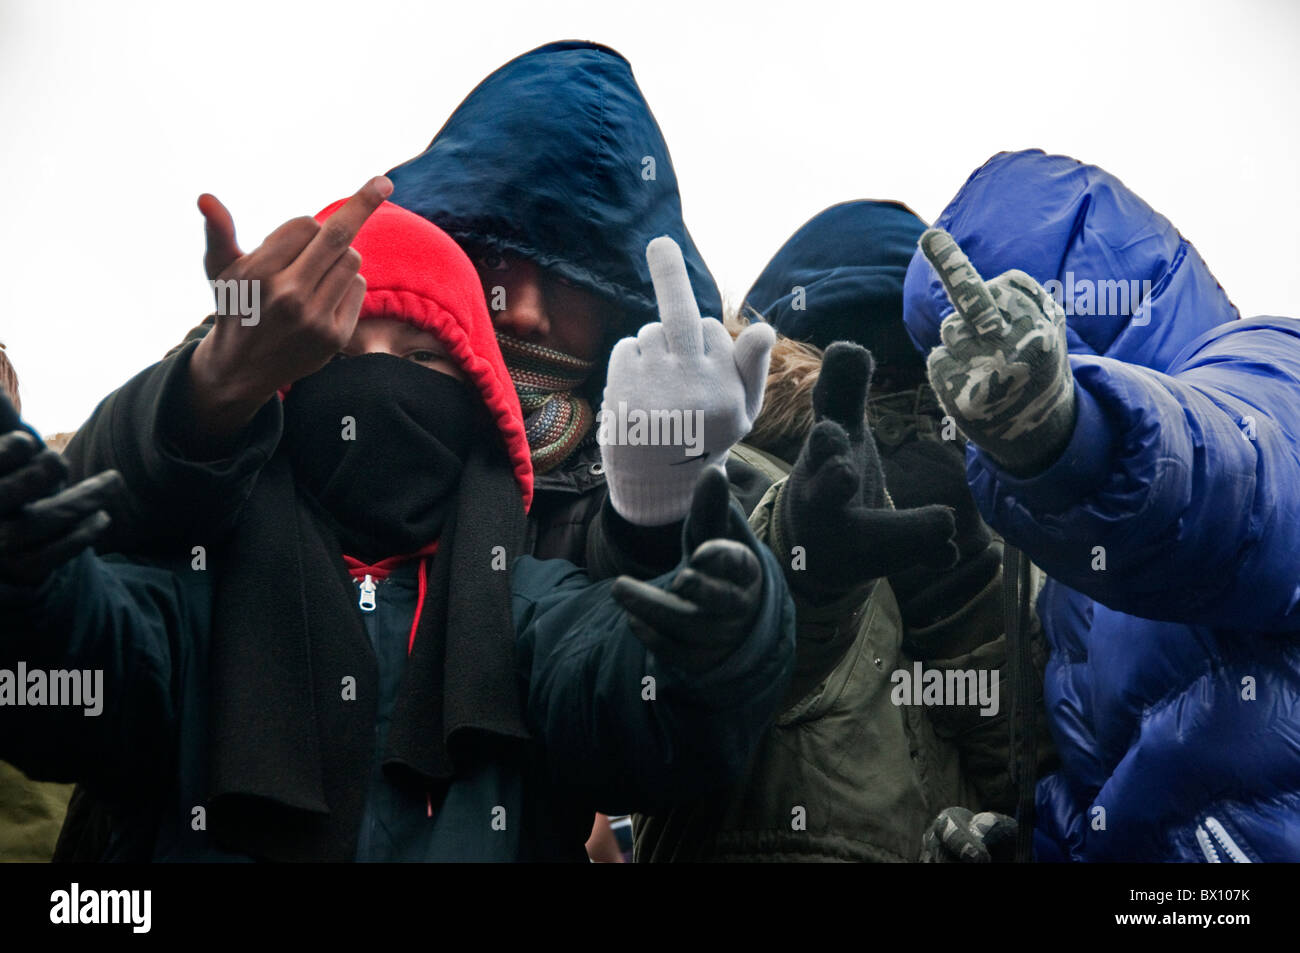 Group of young kids making rude gestures - Stock Image